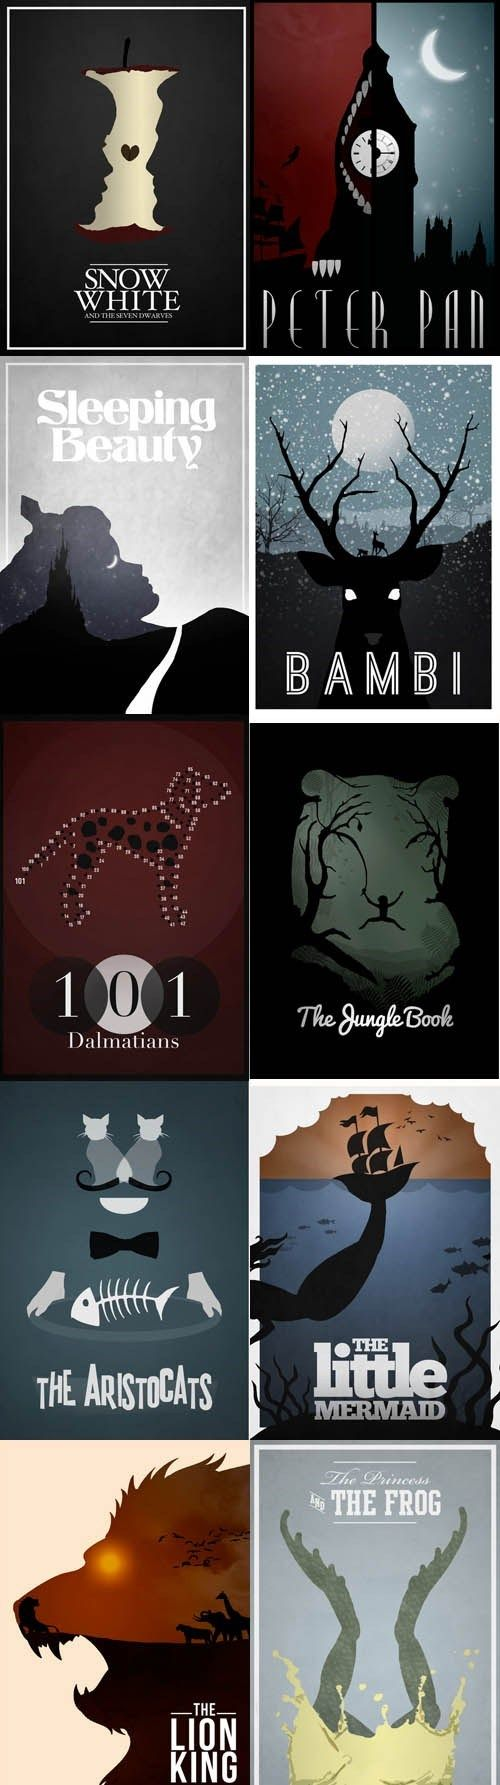 These are all pretty cool... <- Yeah, but top 3 are definitely Lion King, Peter Pan, and Jungle Book... Mermaid and Aristocats get an honorable mention.